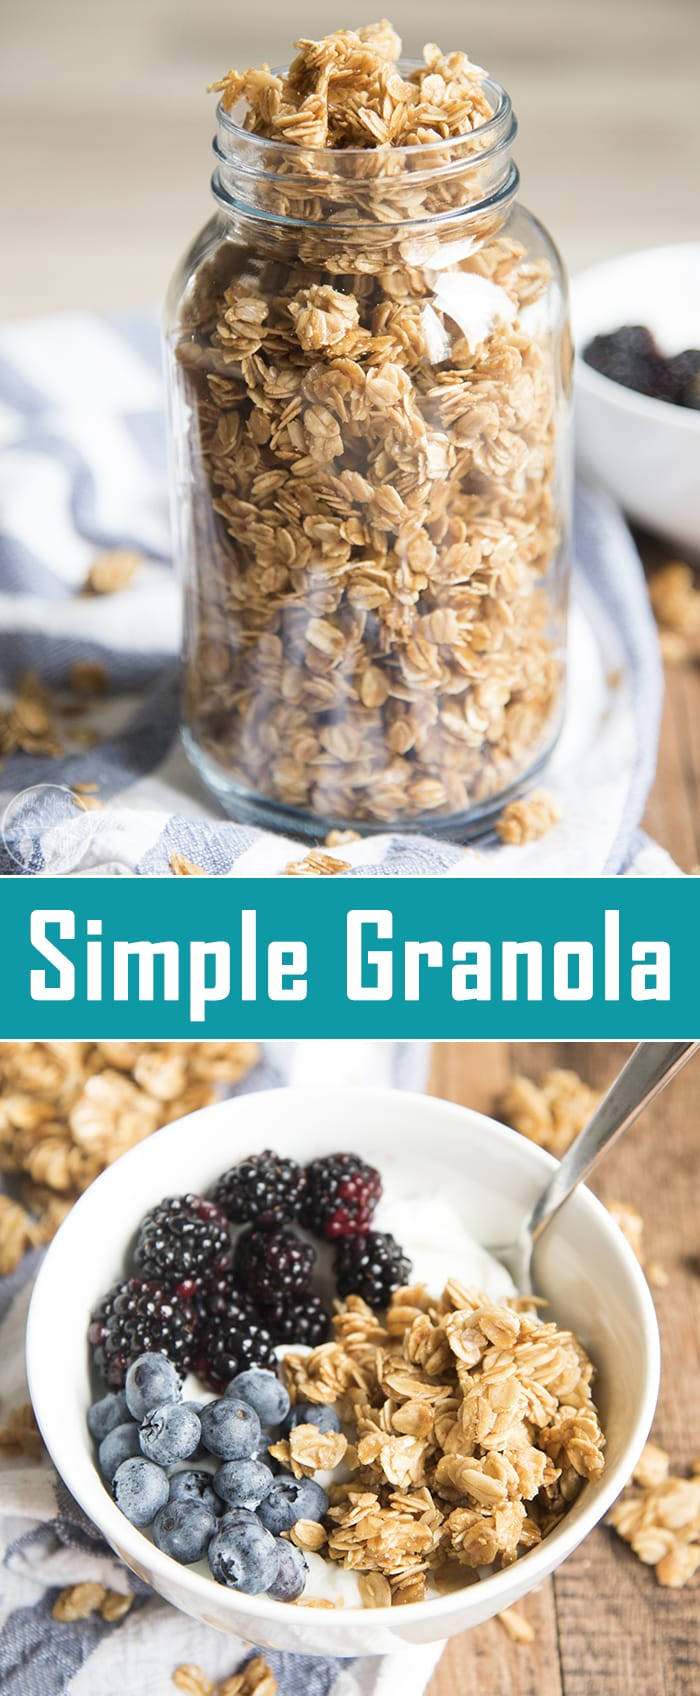 This simple granola recipe is the perfect base recipe for a delicious granola. Great on its own, or with nuts or dried fruit mixed in! Enjoy with yogurt, milk, or plain!